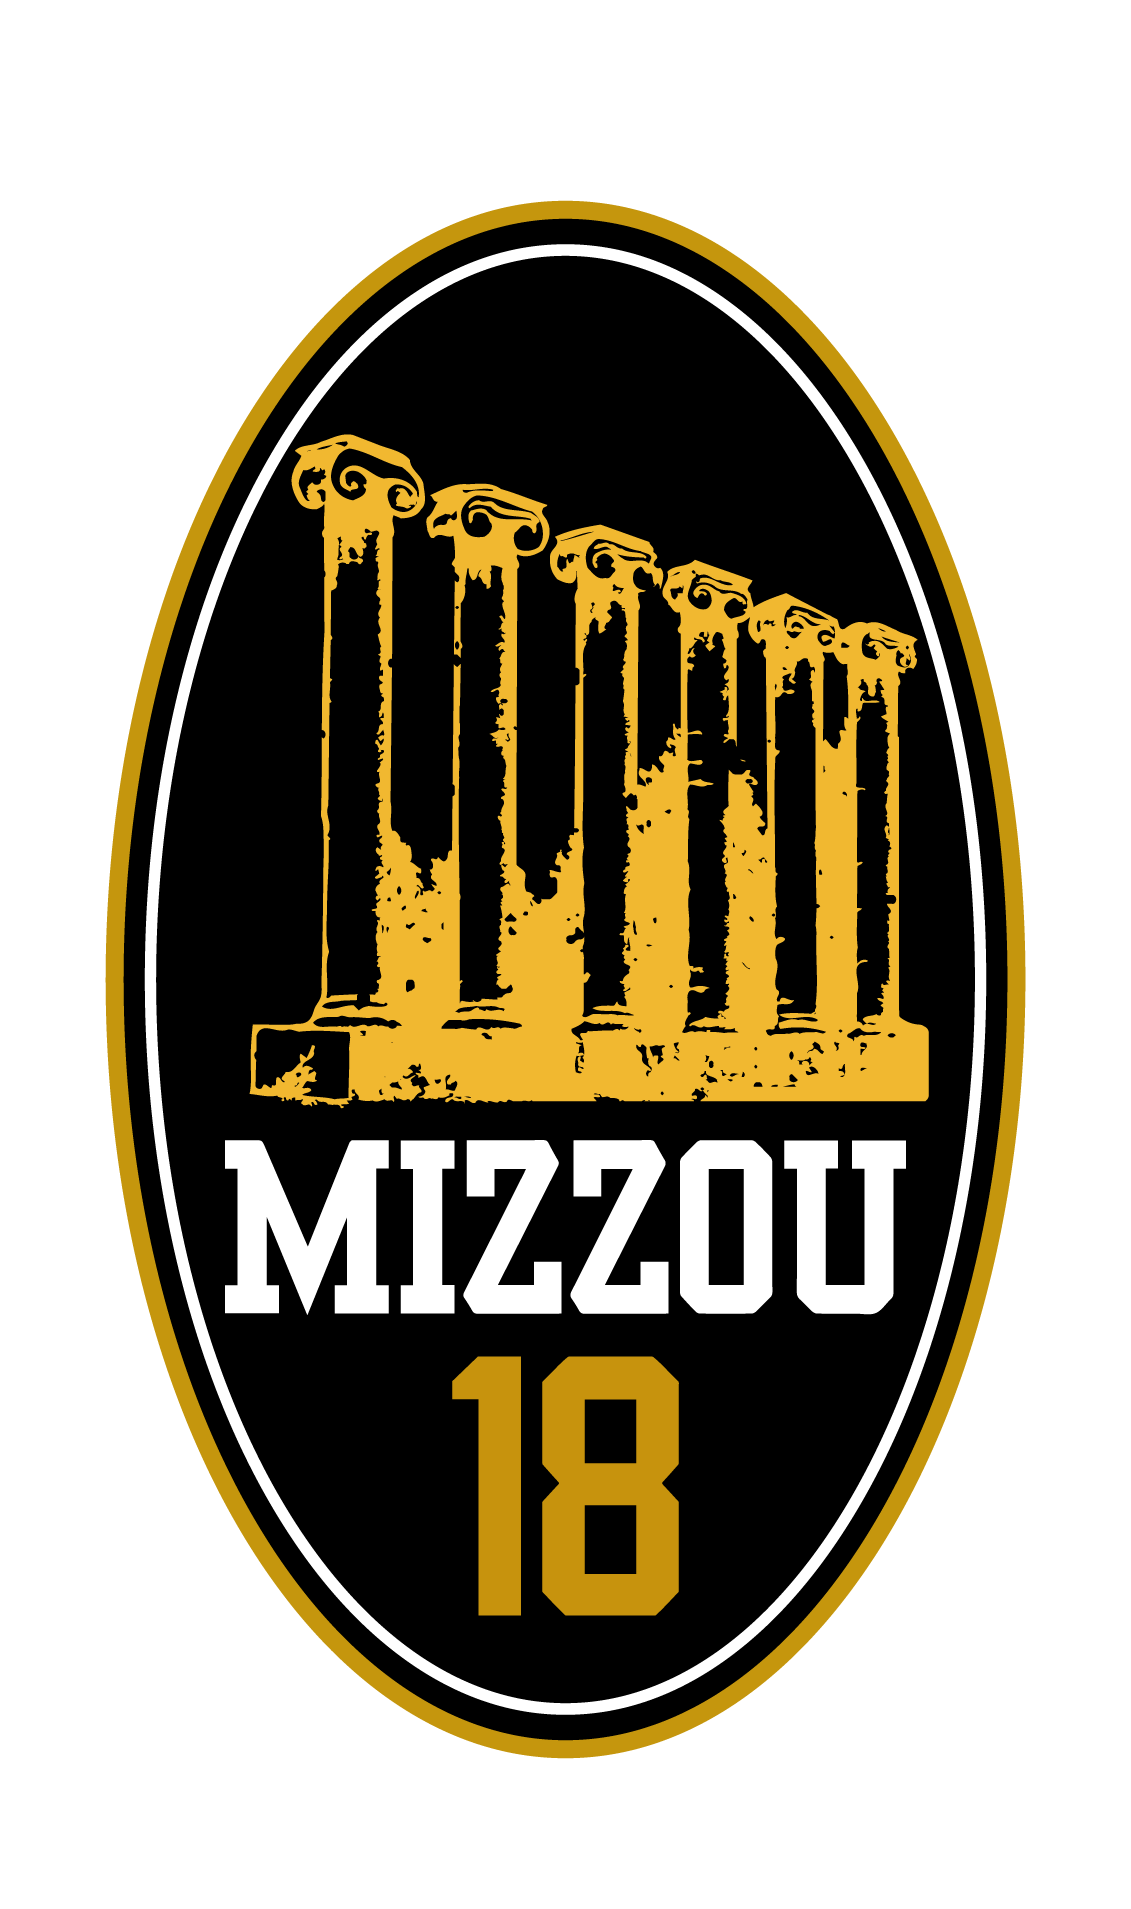 Mizzou Graduation 2020.Mizzou Alumni Association 2020 Mizzou 18 Award Application